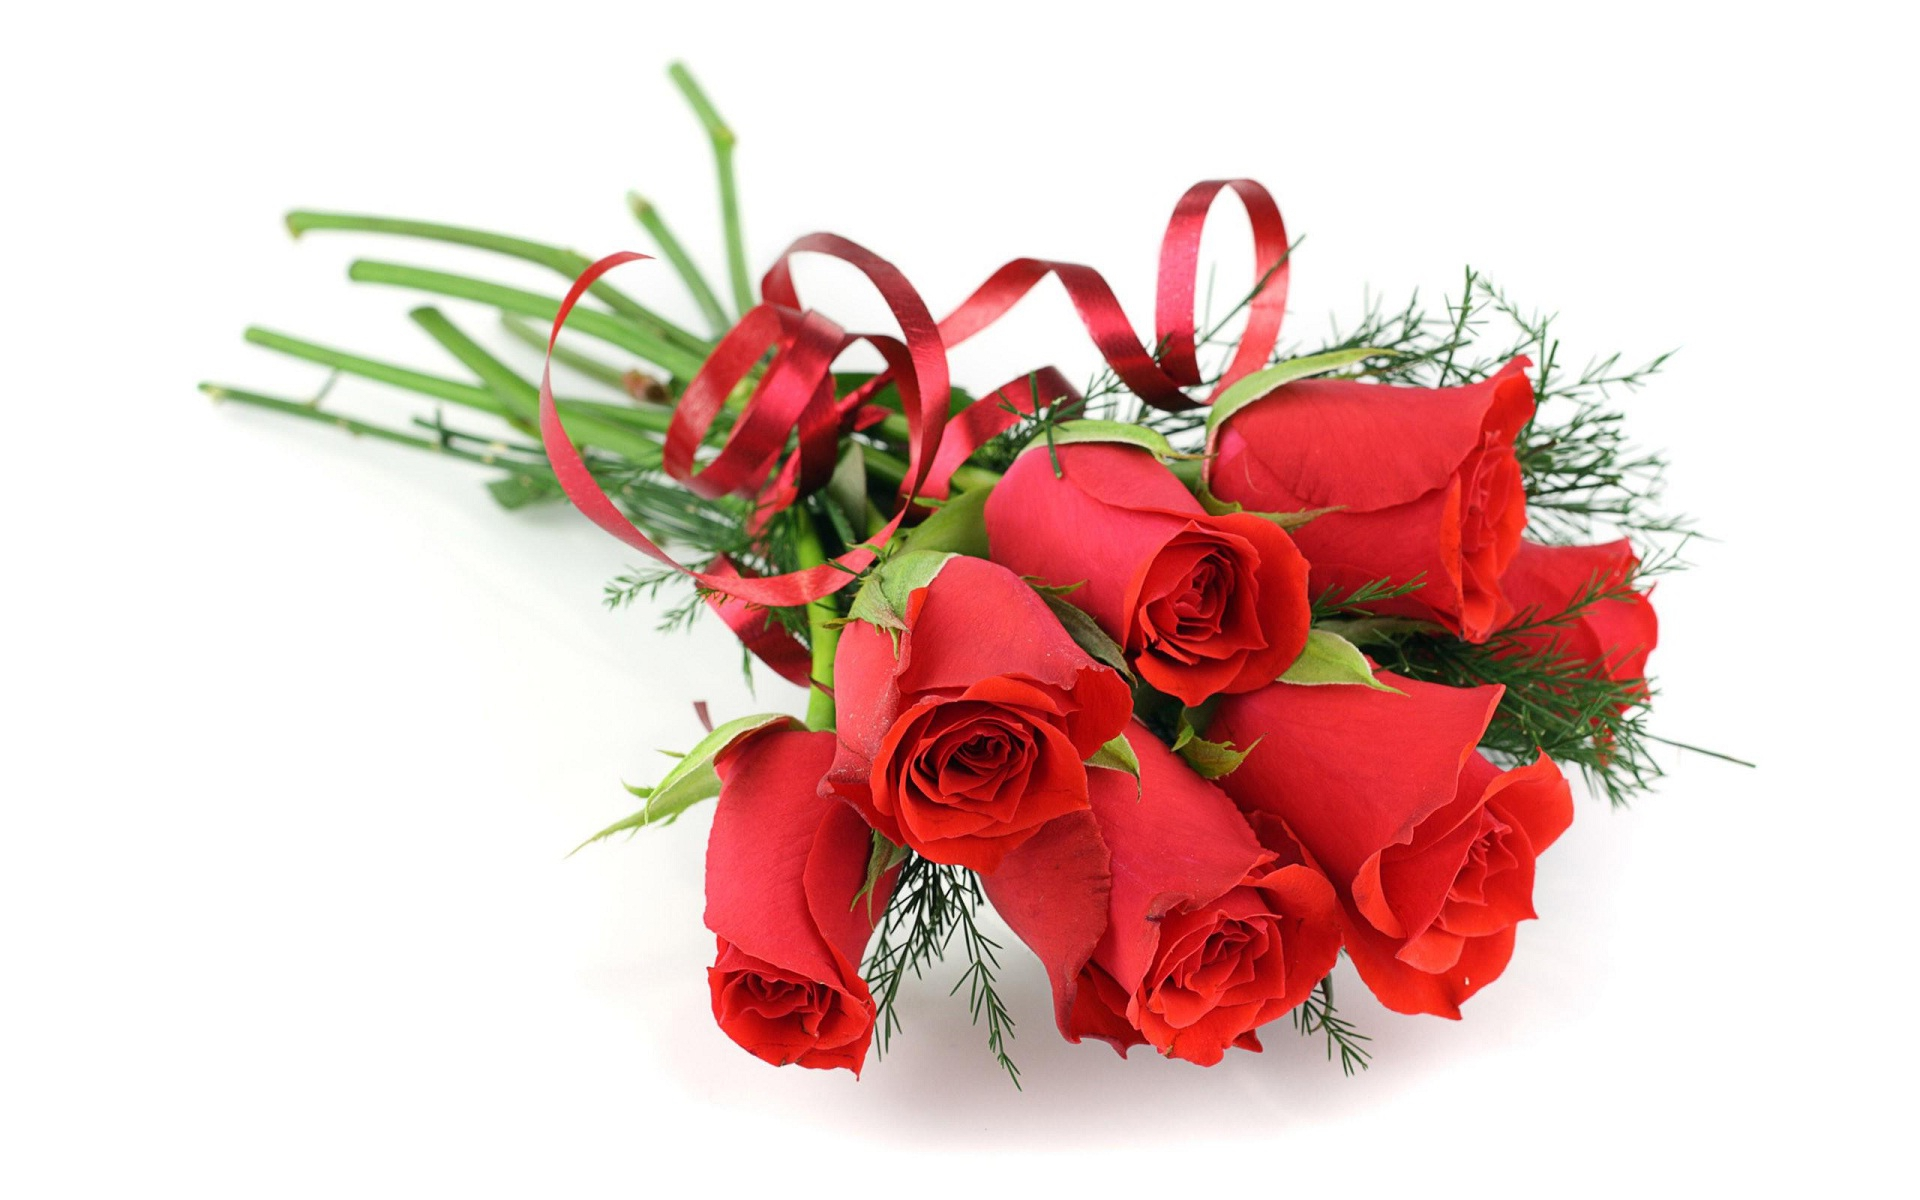 Flower bouquet wallpapers images photos pictures backgrounds - Bunch of roses hd images ...